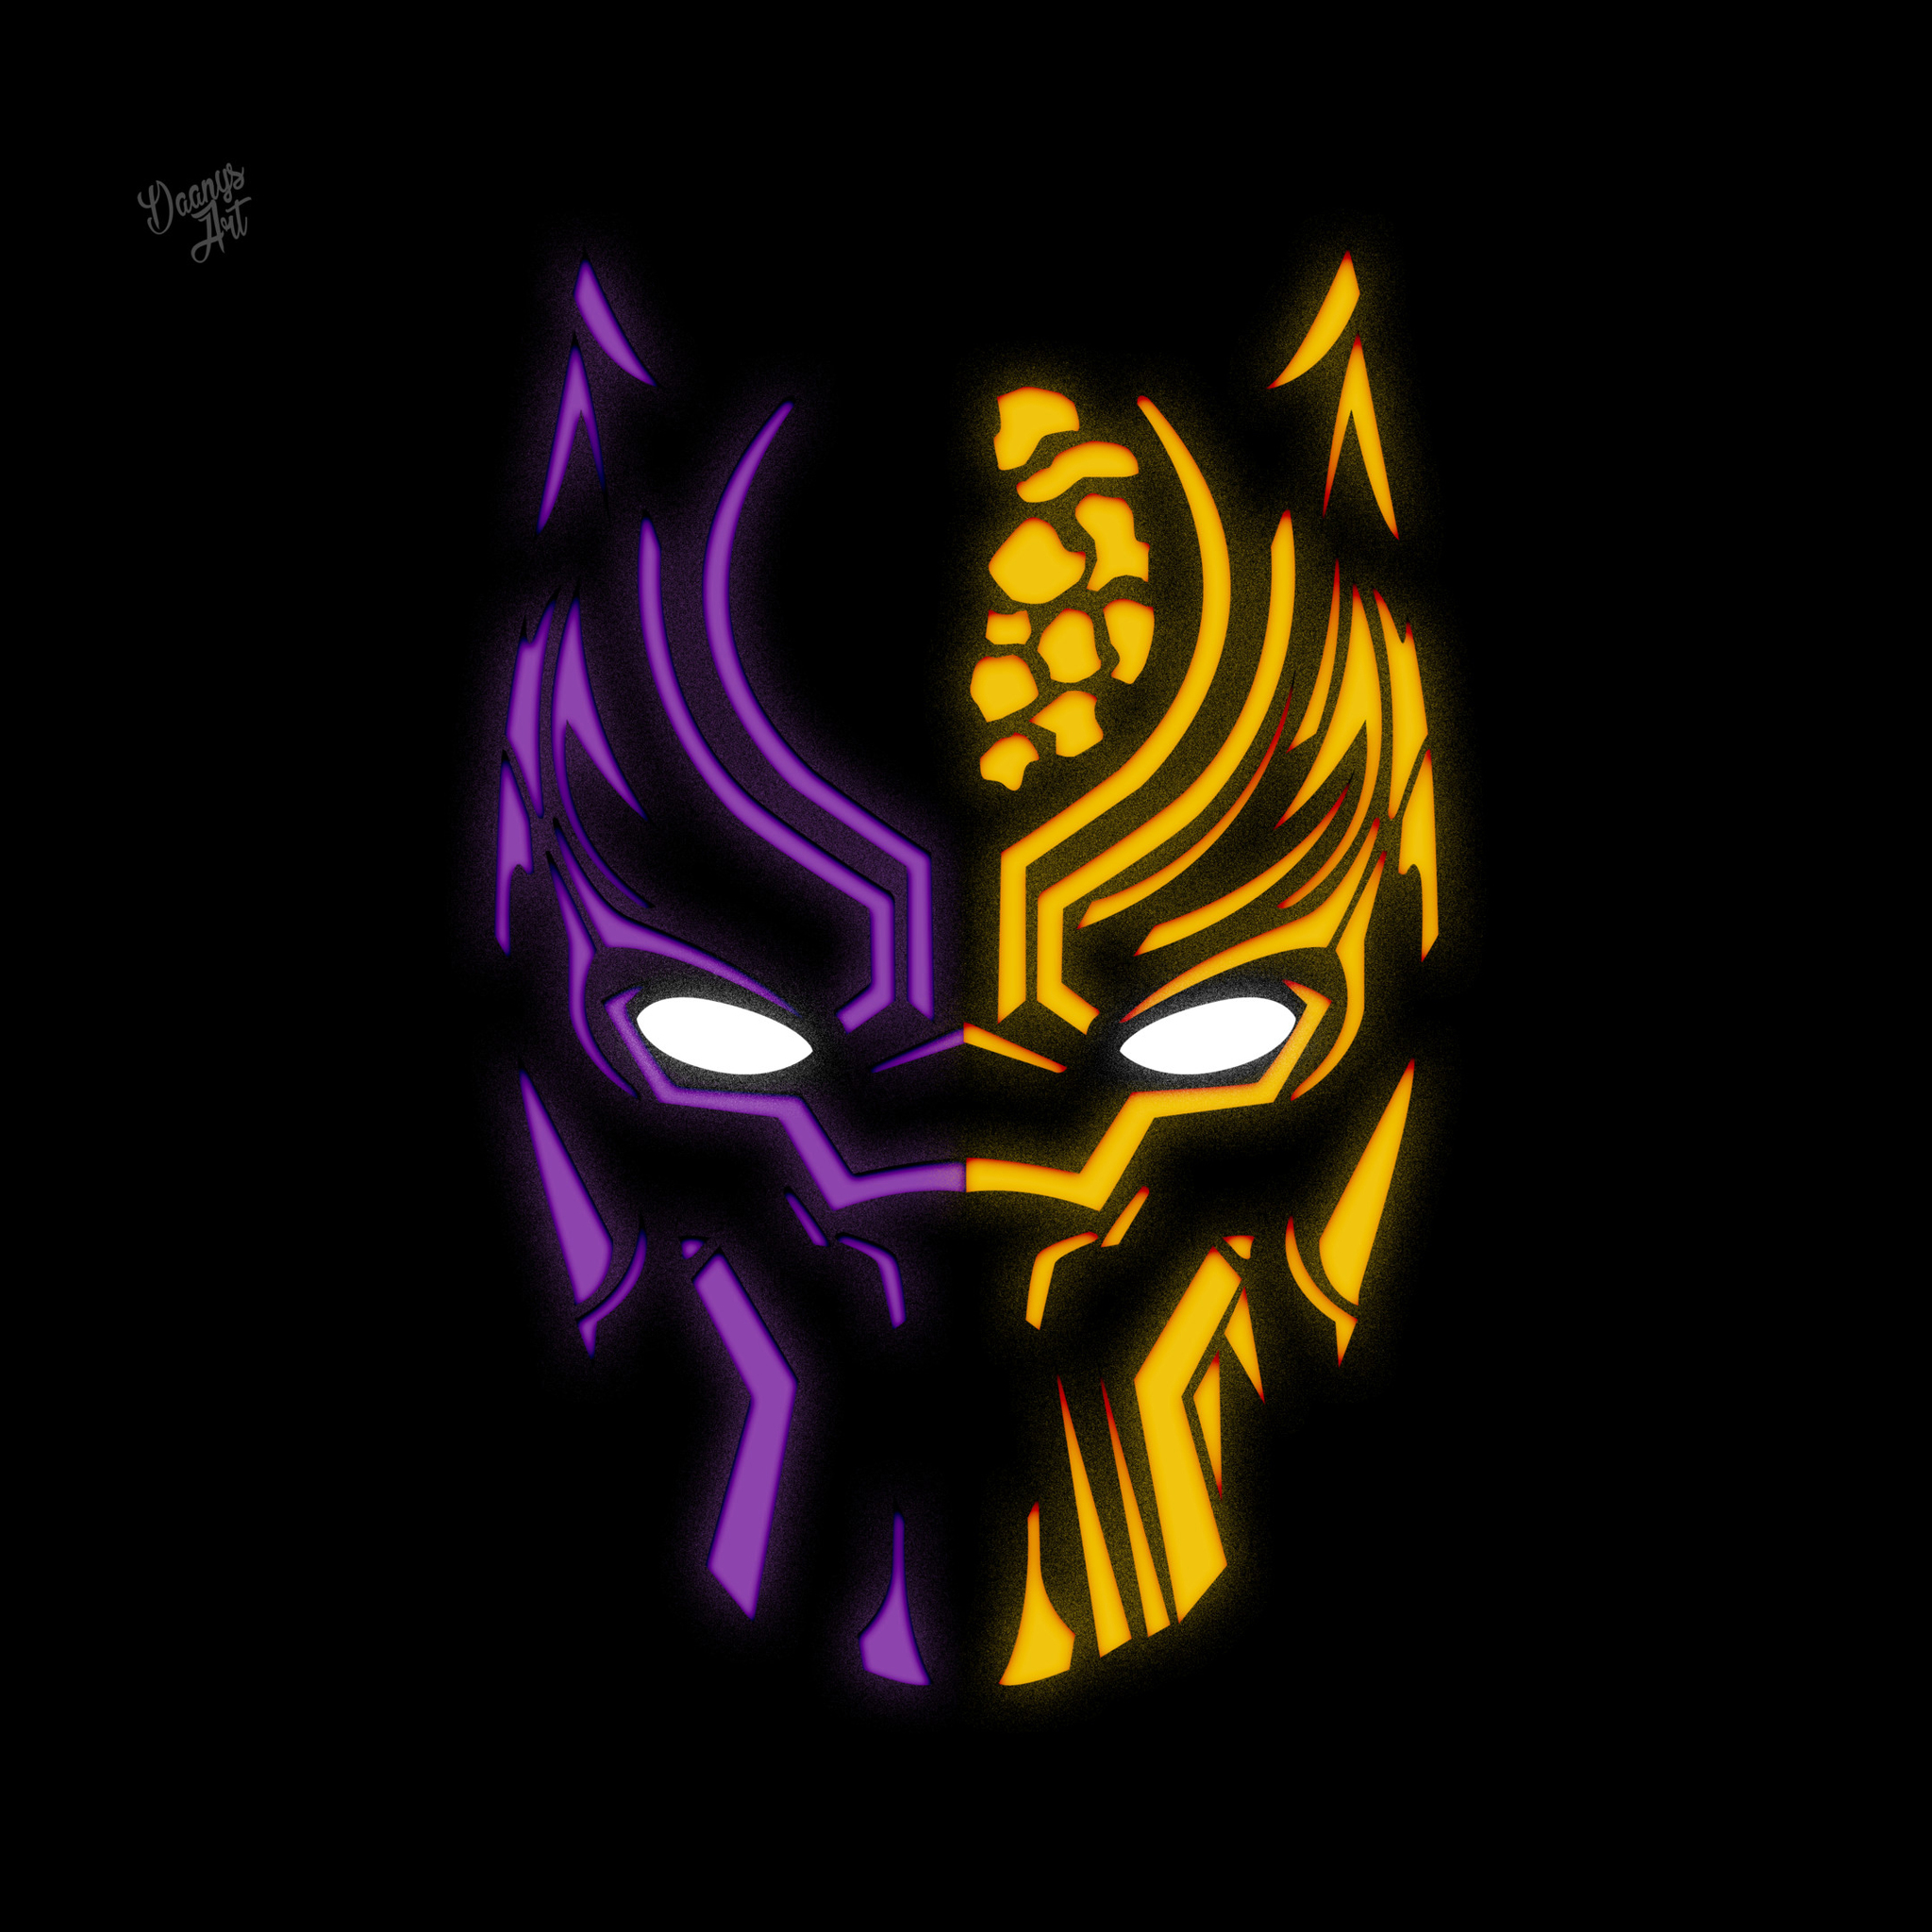 2048x2048 Black Panther Illustration 4k Ipad Air HD 4k ...